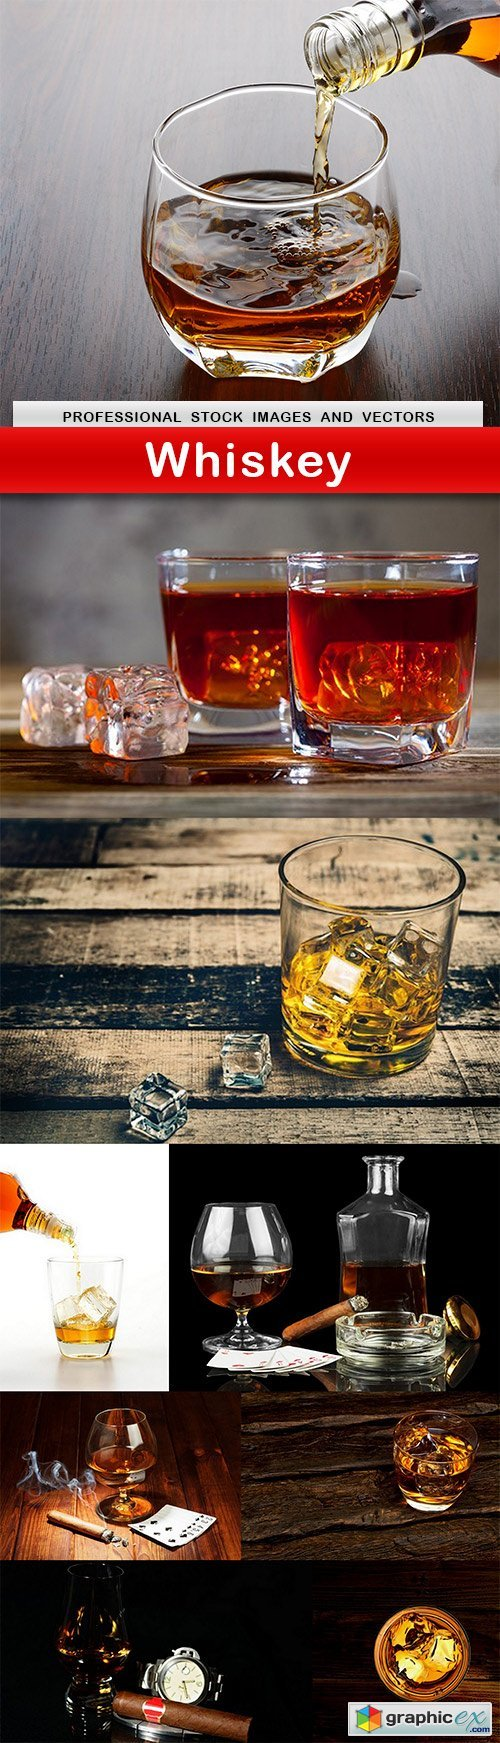 Whiskey - 9 UHQ JPEG